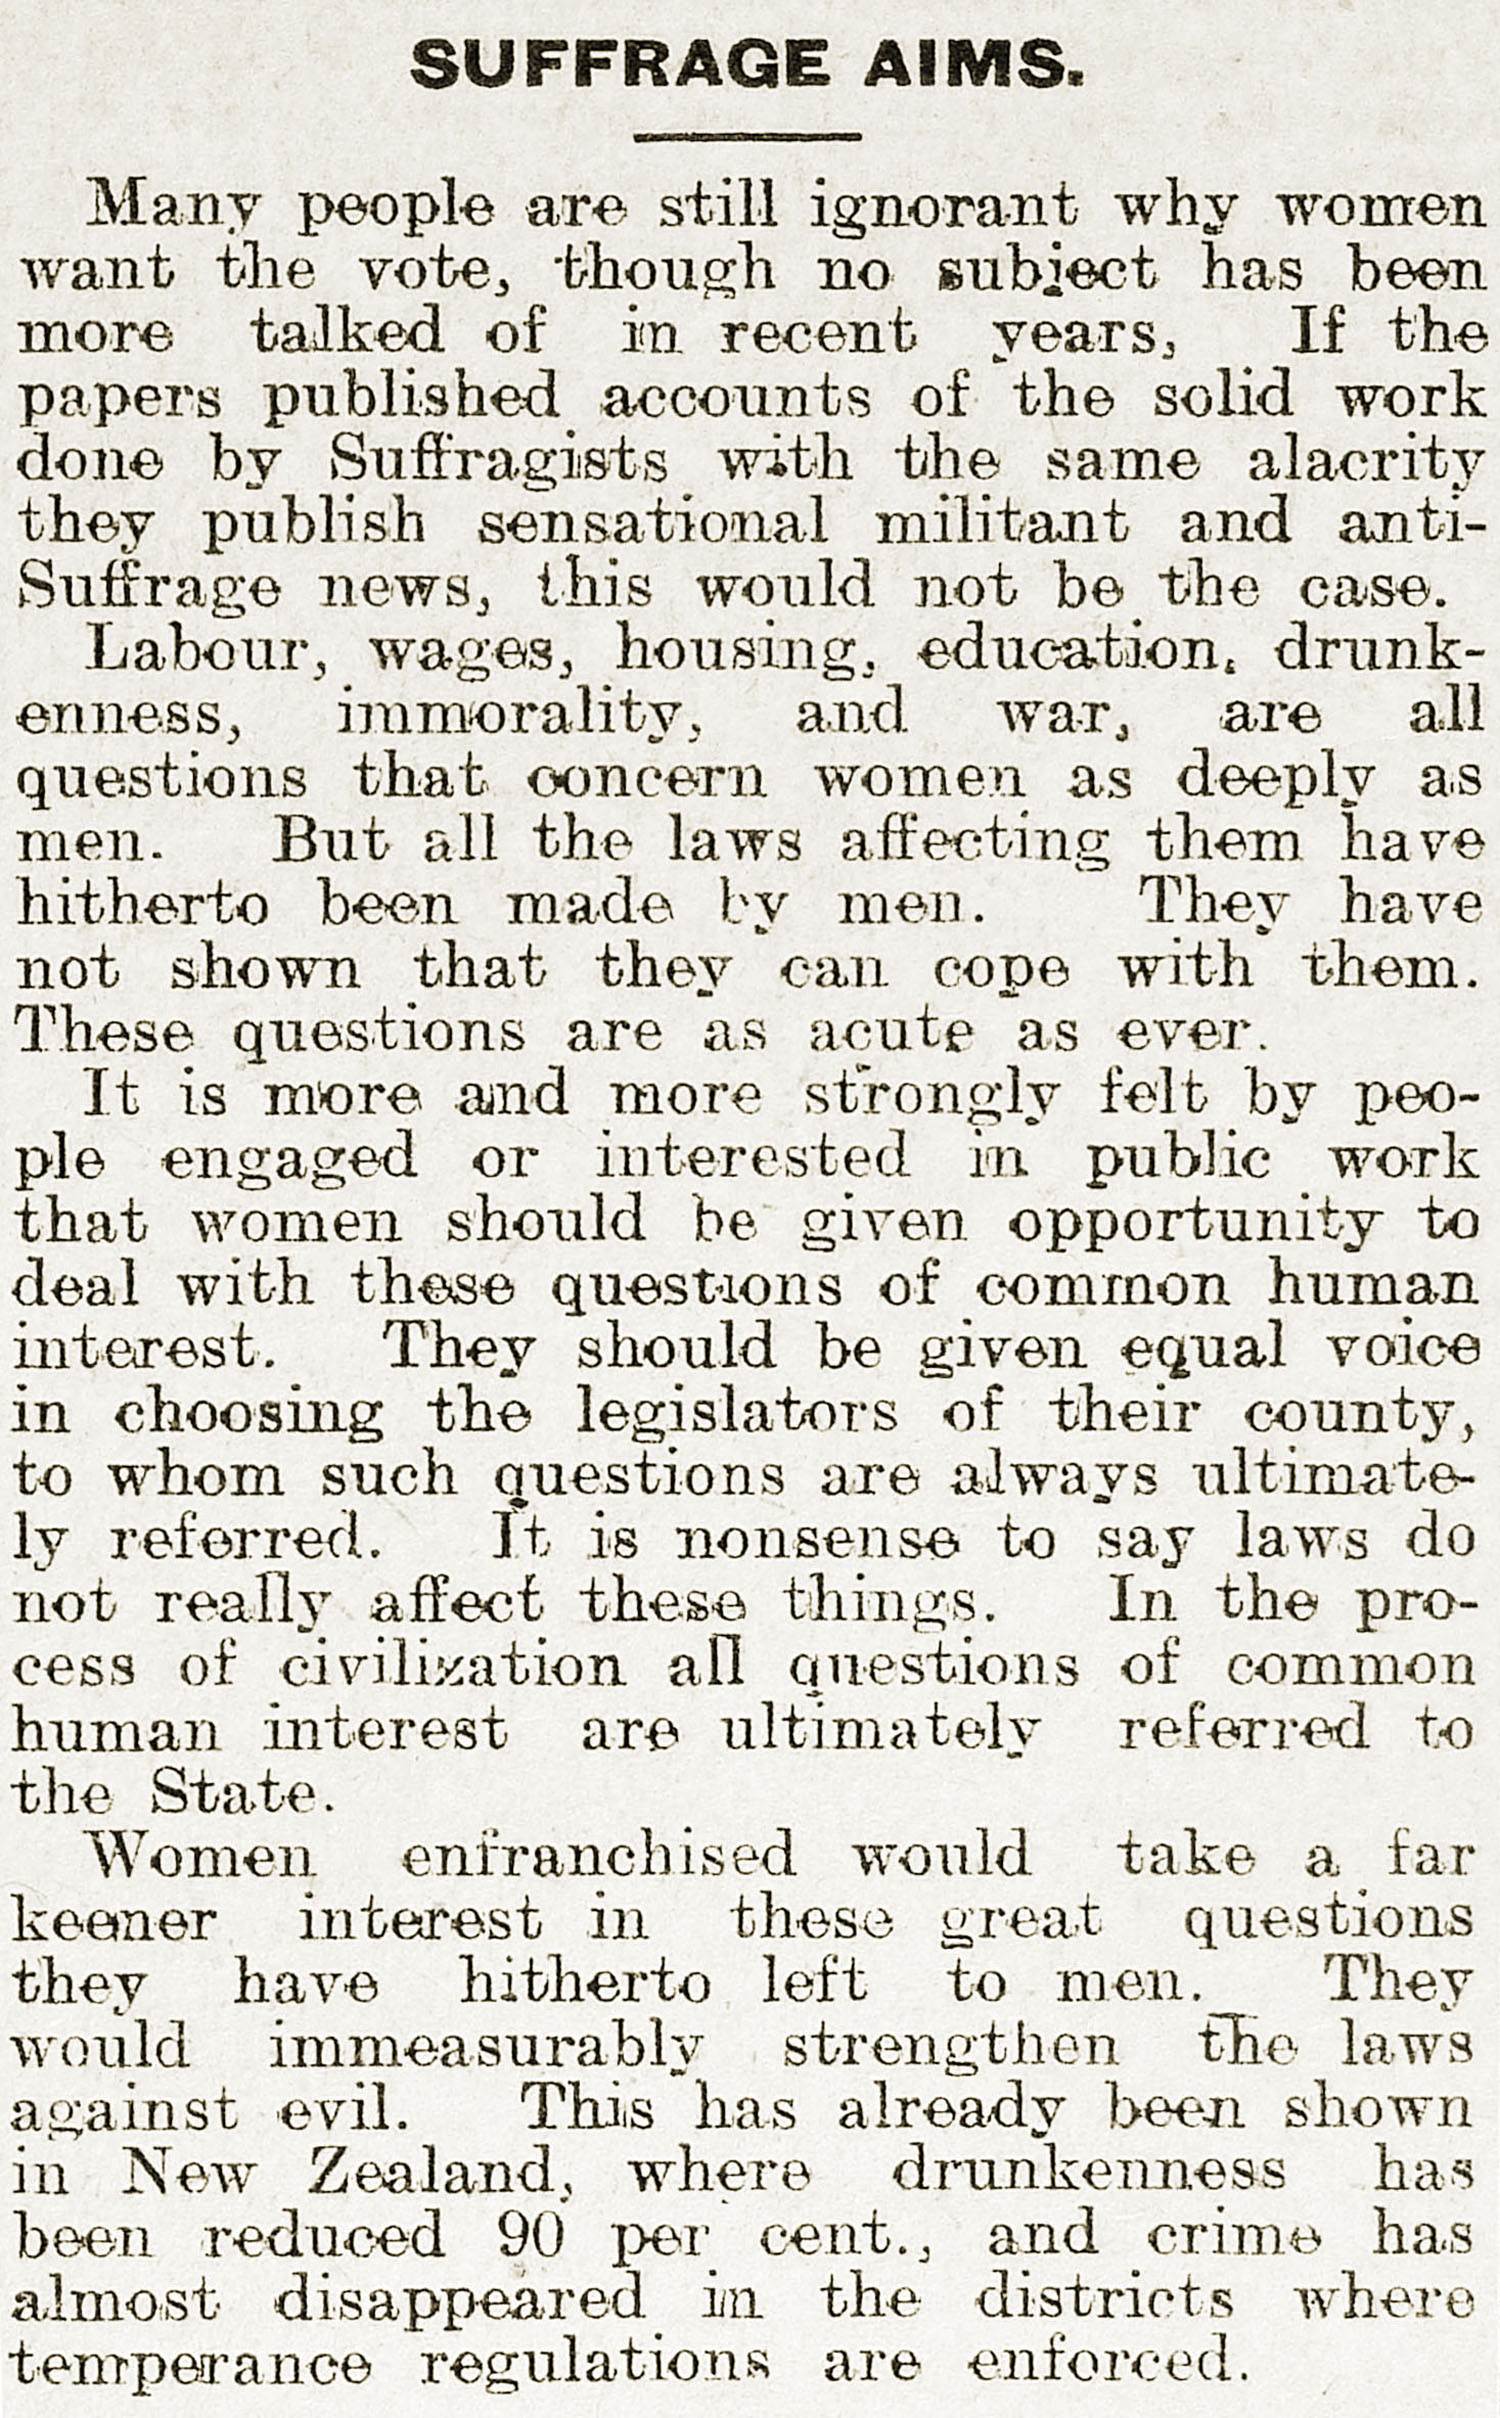 Pro-suffrage newspaper article, Shetland News, 23 March 1912